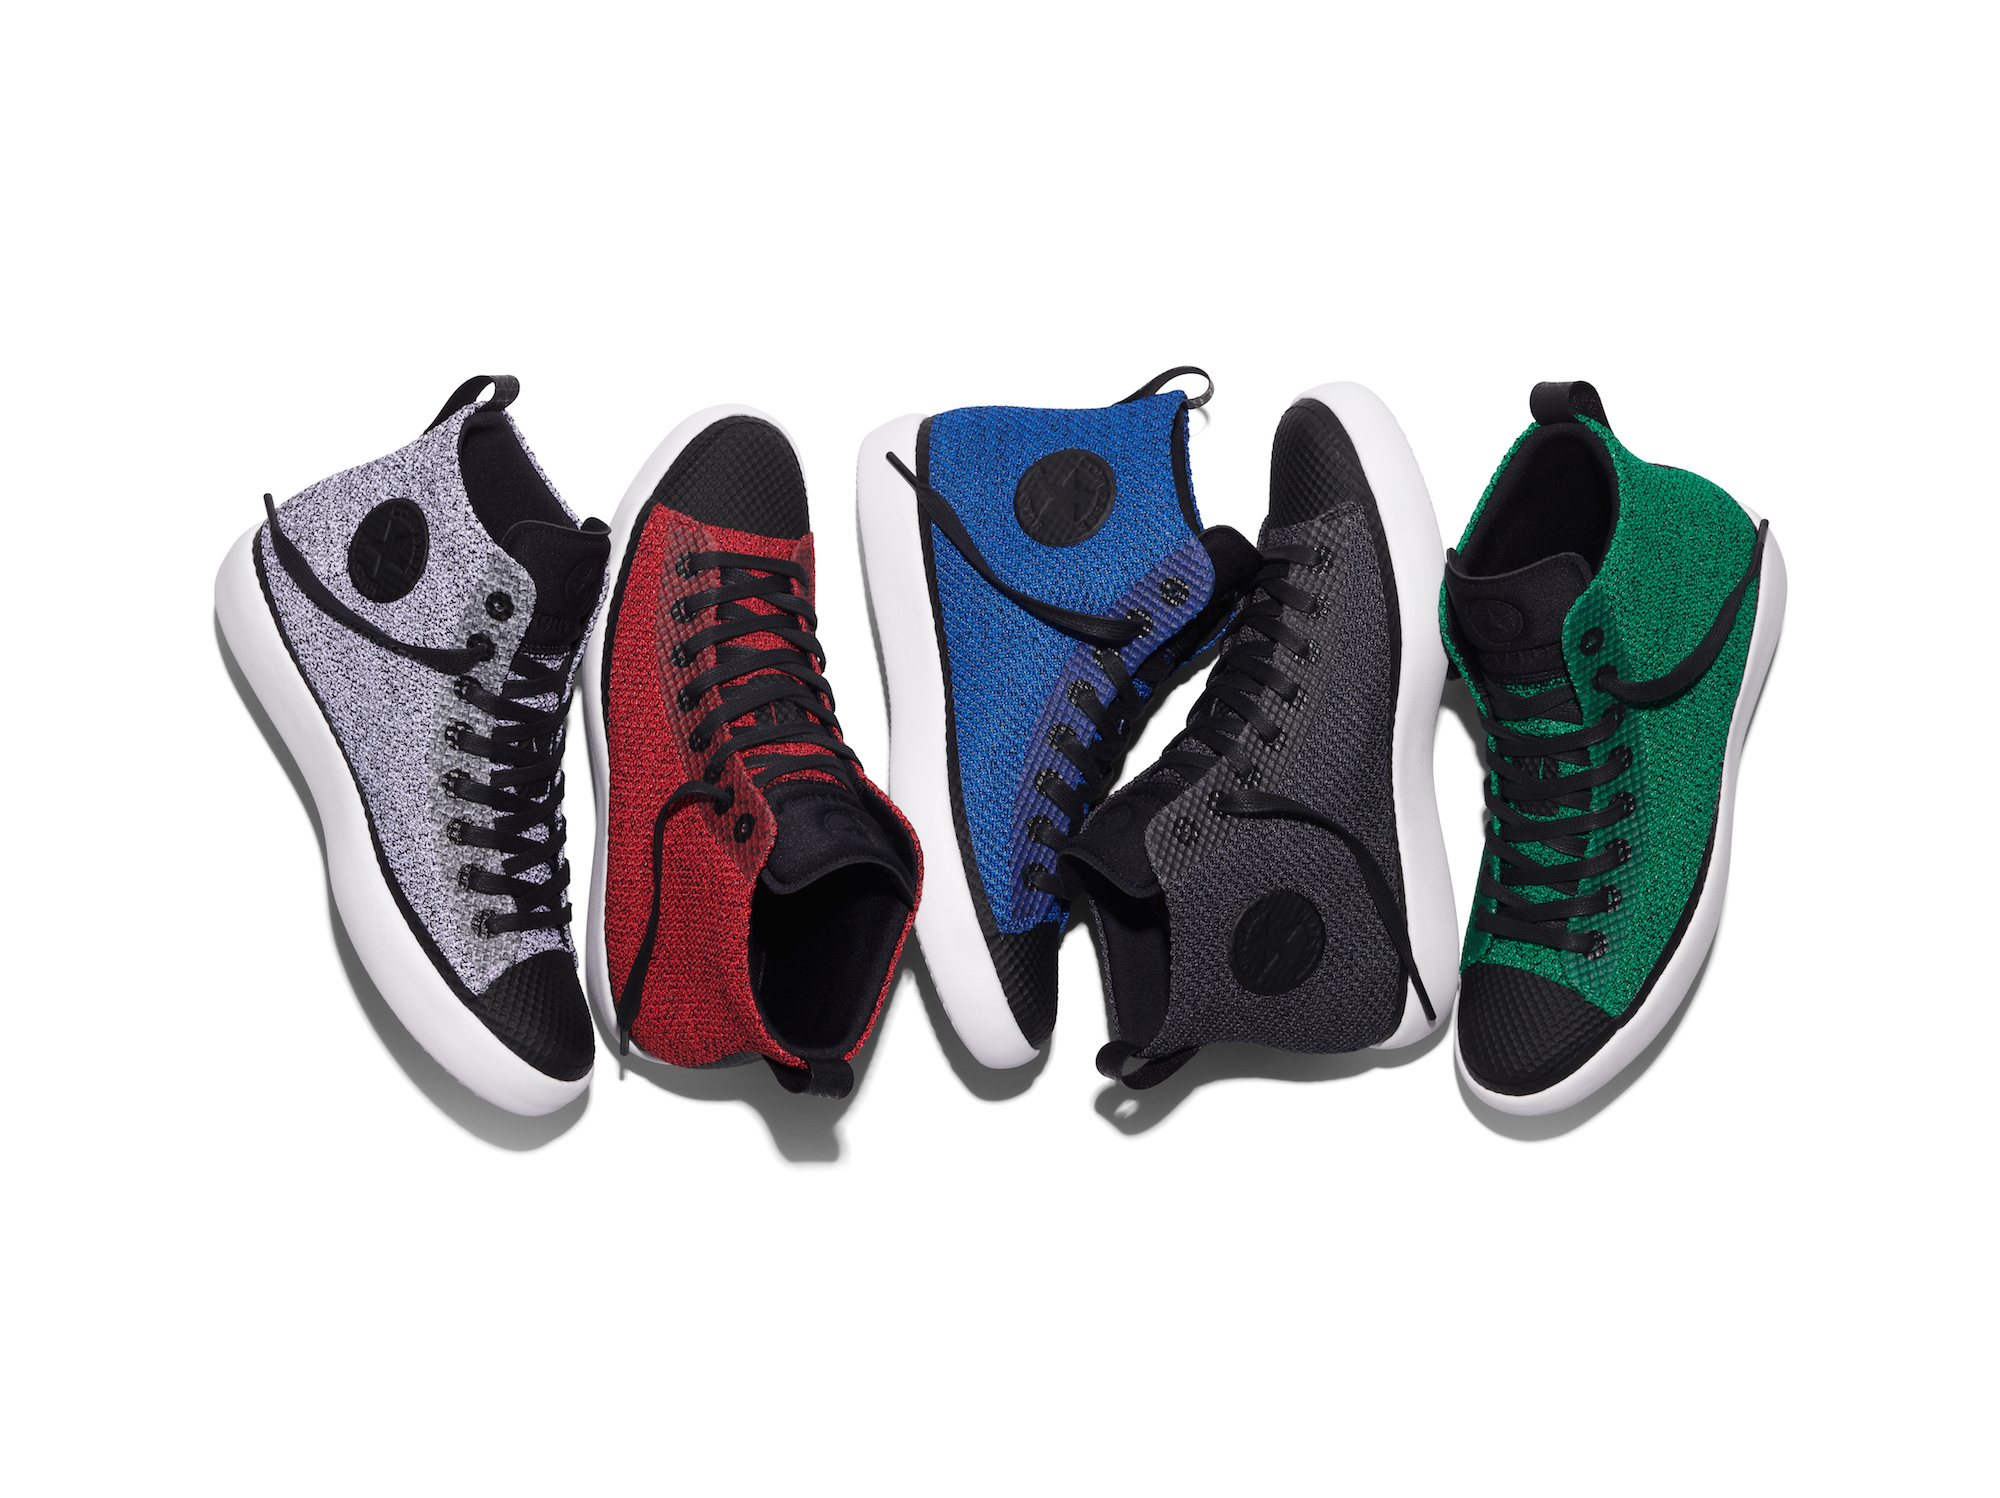 The new Converse All Star Modern high-top